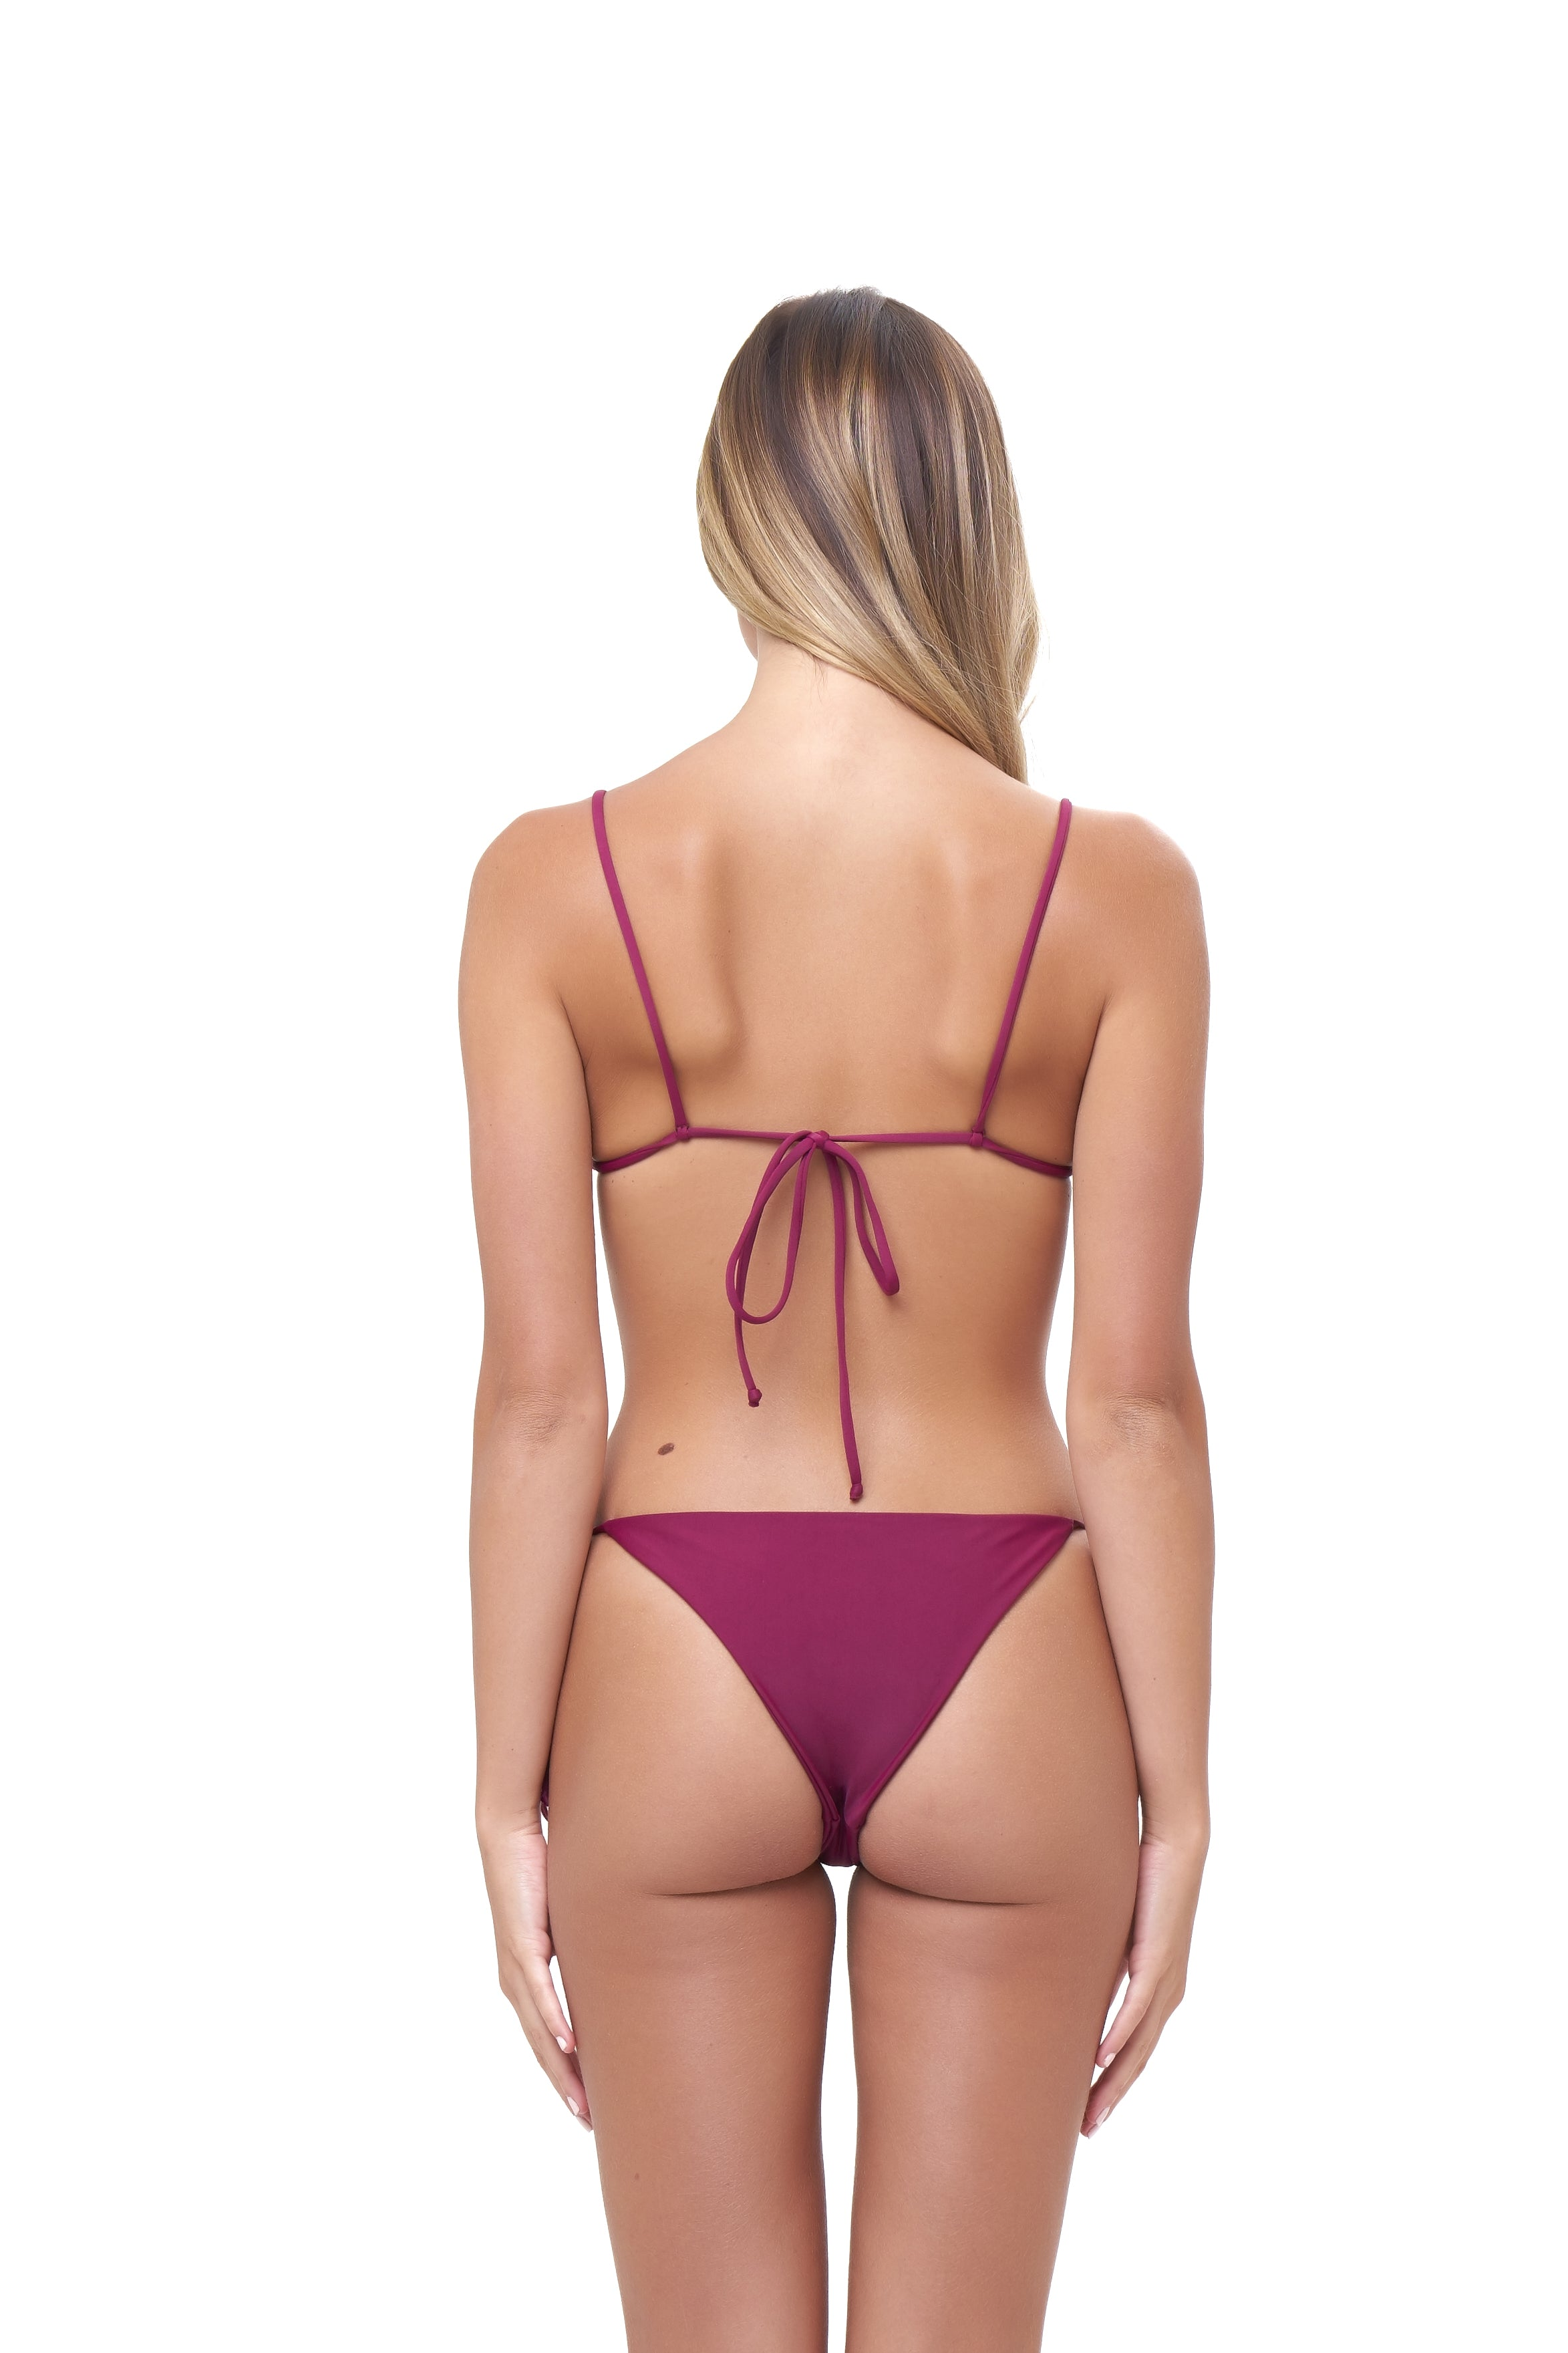 Storm Swimwear - Formentera - Tie Side Bikini Bottom in Wine